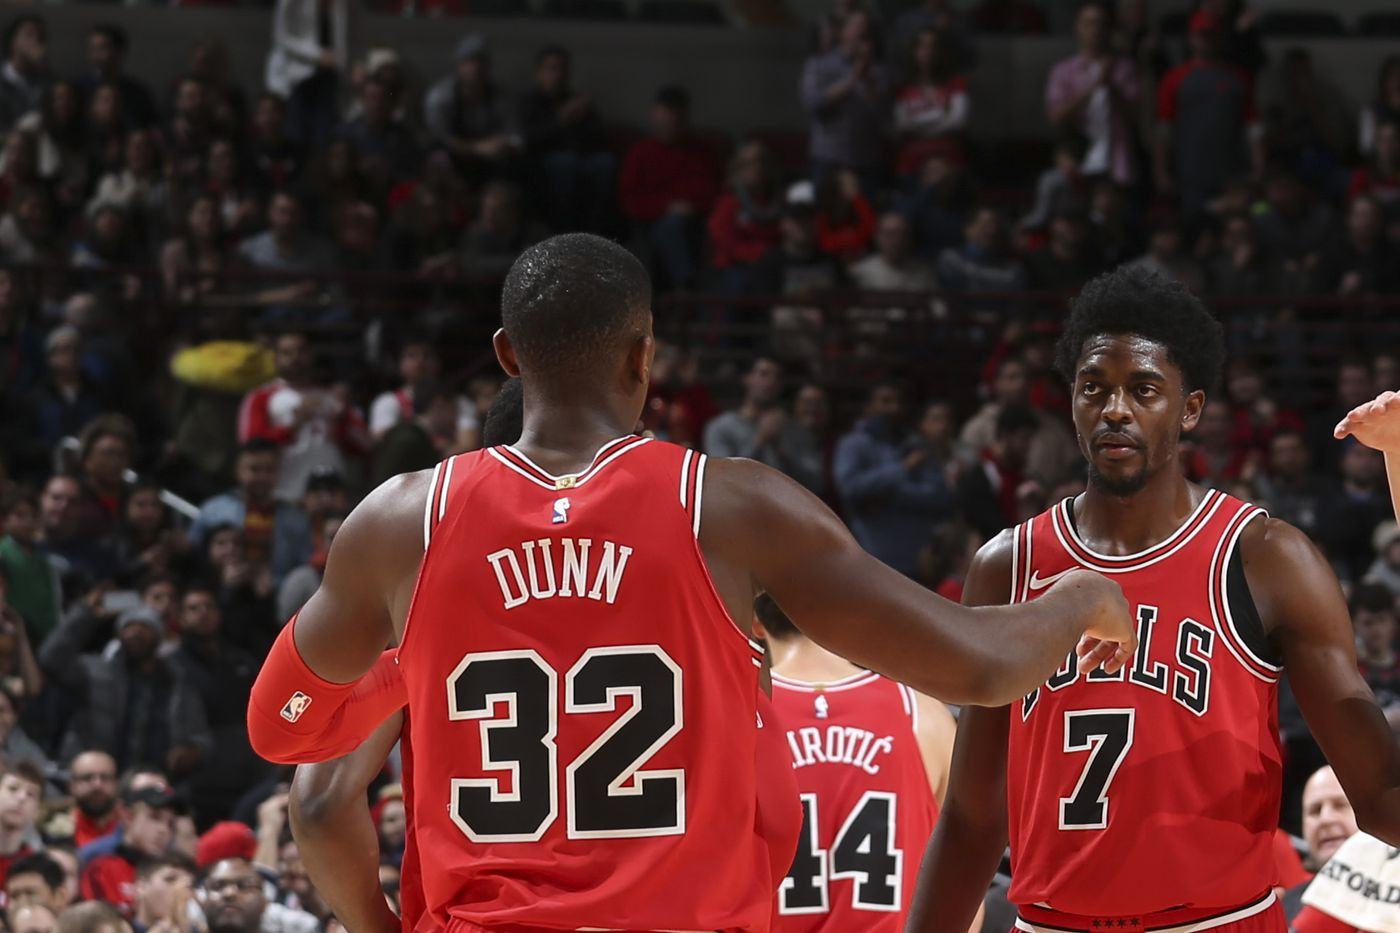 detailed look dccfc d144d Bulls trade rumor includes Kris Dunn for Justin Holiday ...